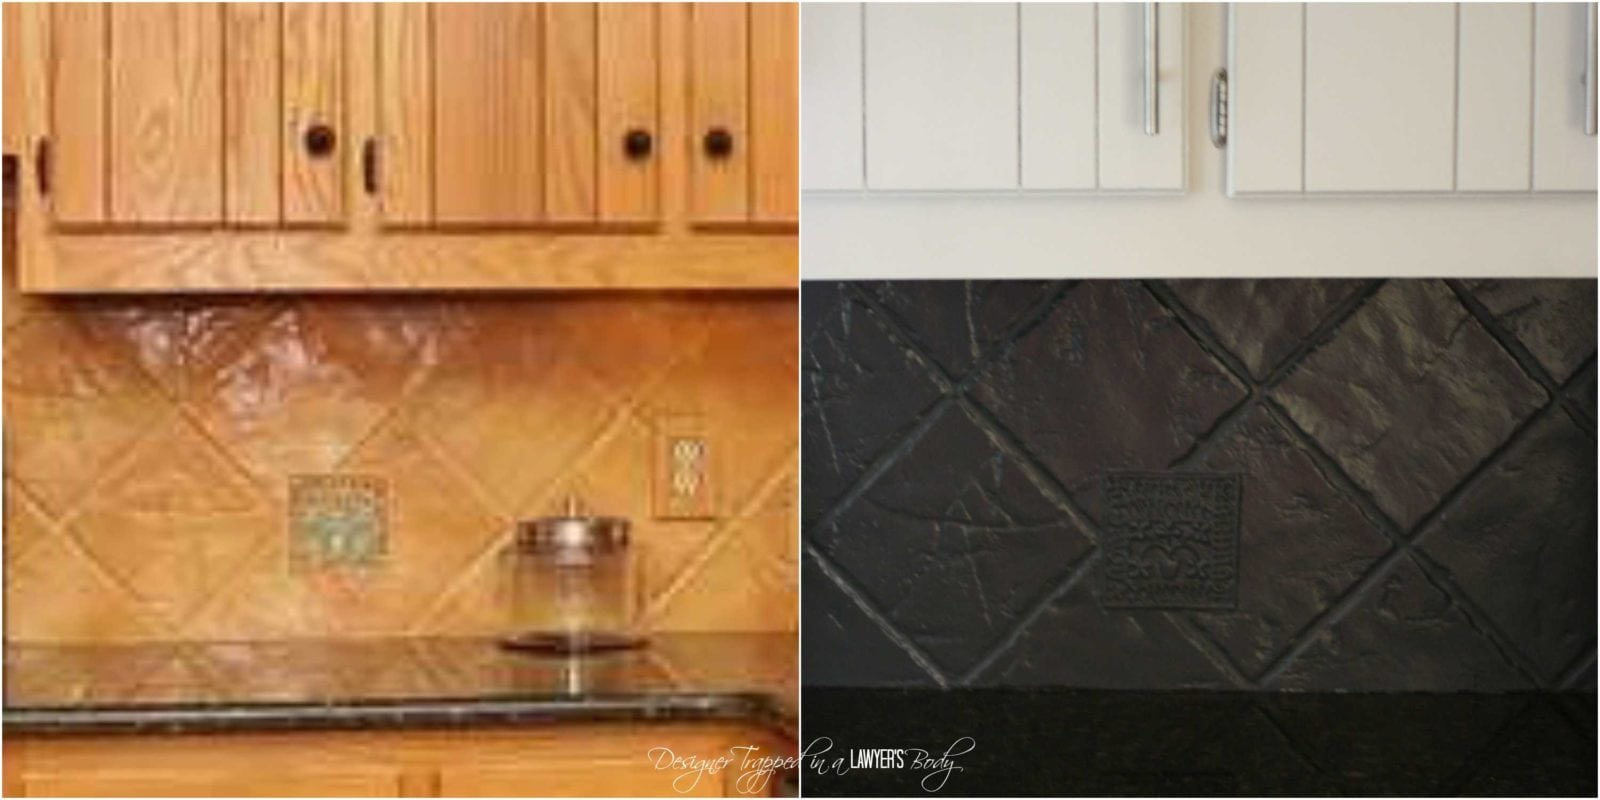 Simple Kitchen Backsplash Tiles how to paint a tile backsplash: my budget solution! | designer trapped